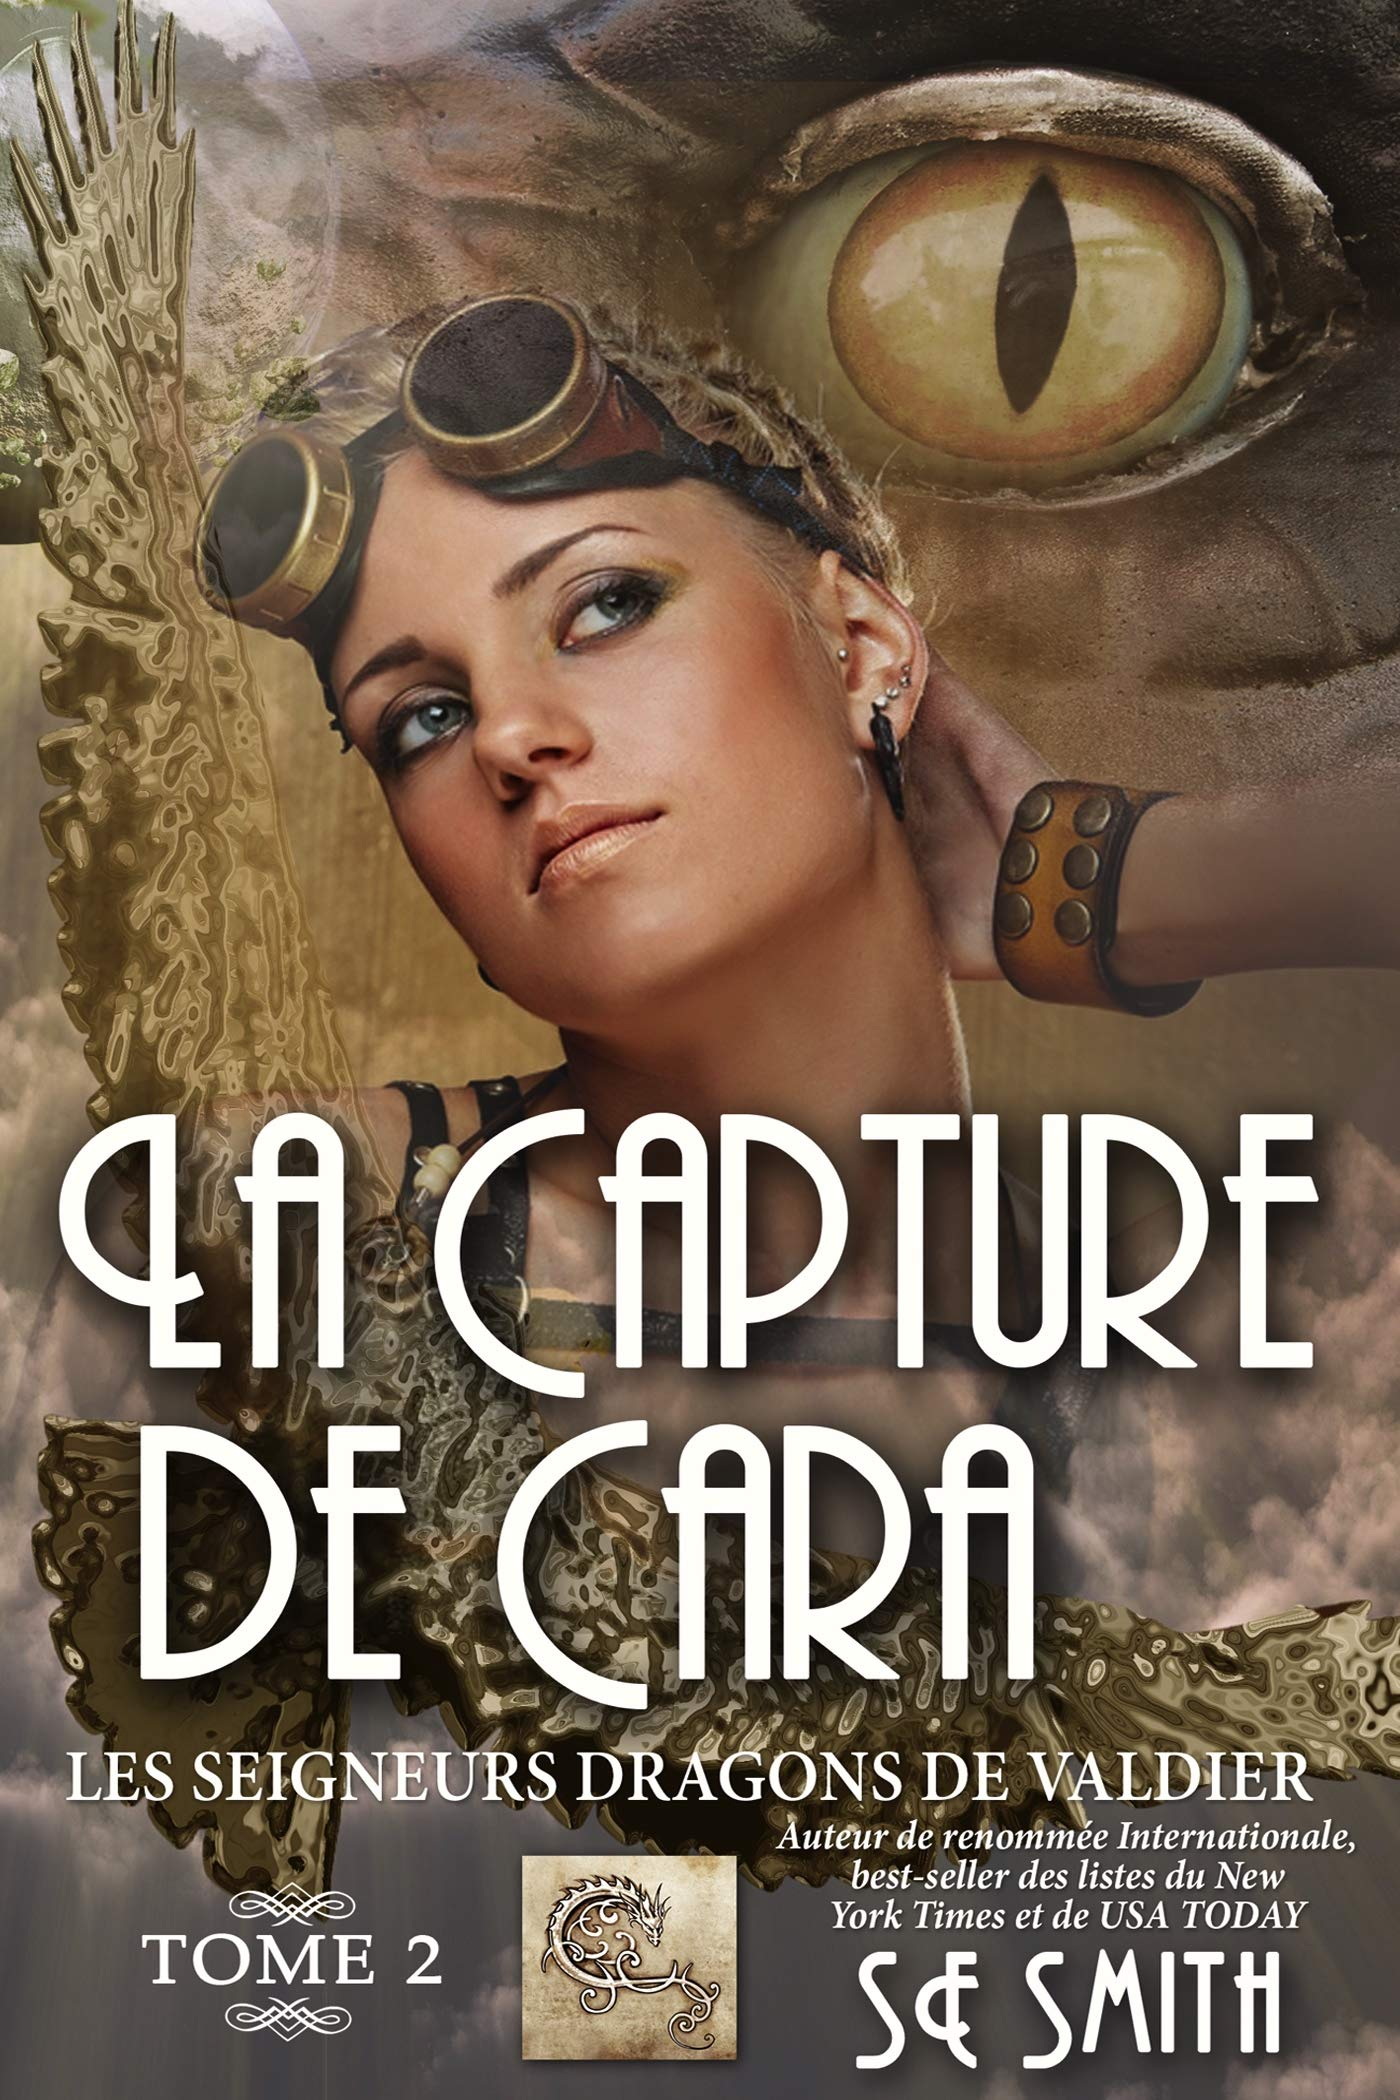 La capture de Cara (Les Seigneurs Dragons de Valdier t. 2) por S.E. Smith